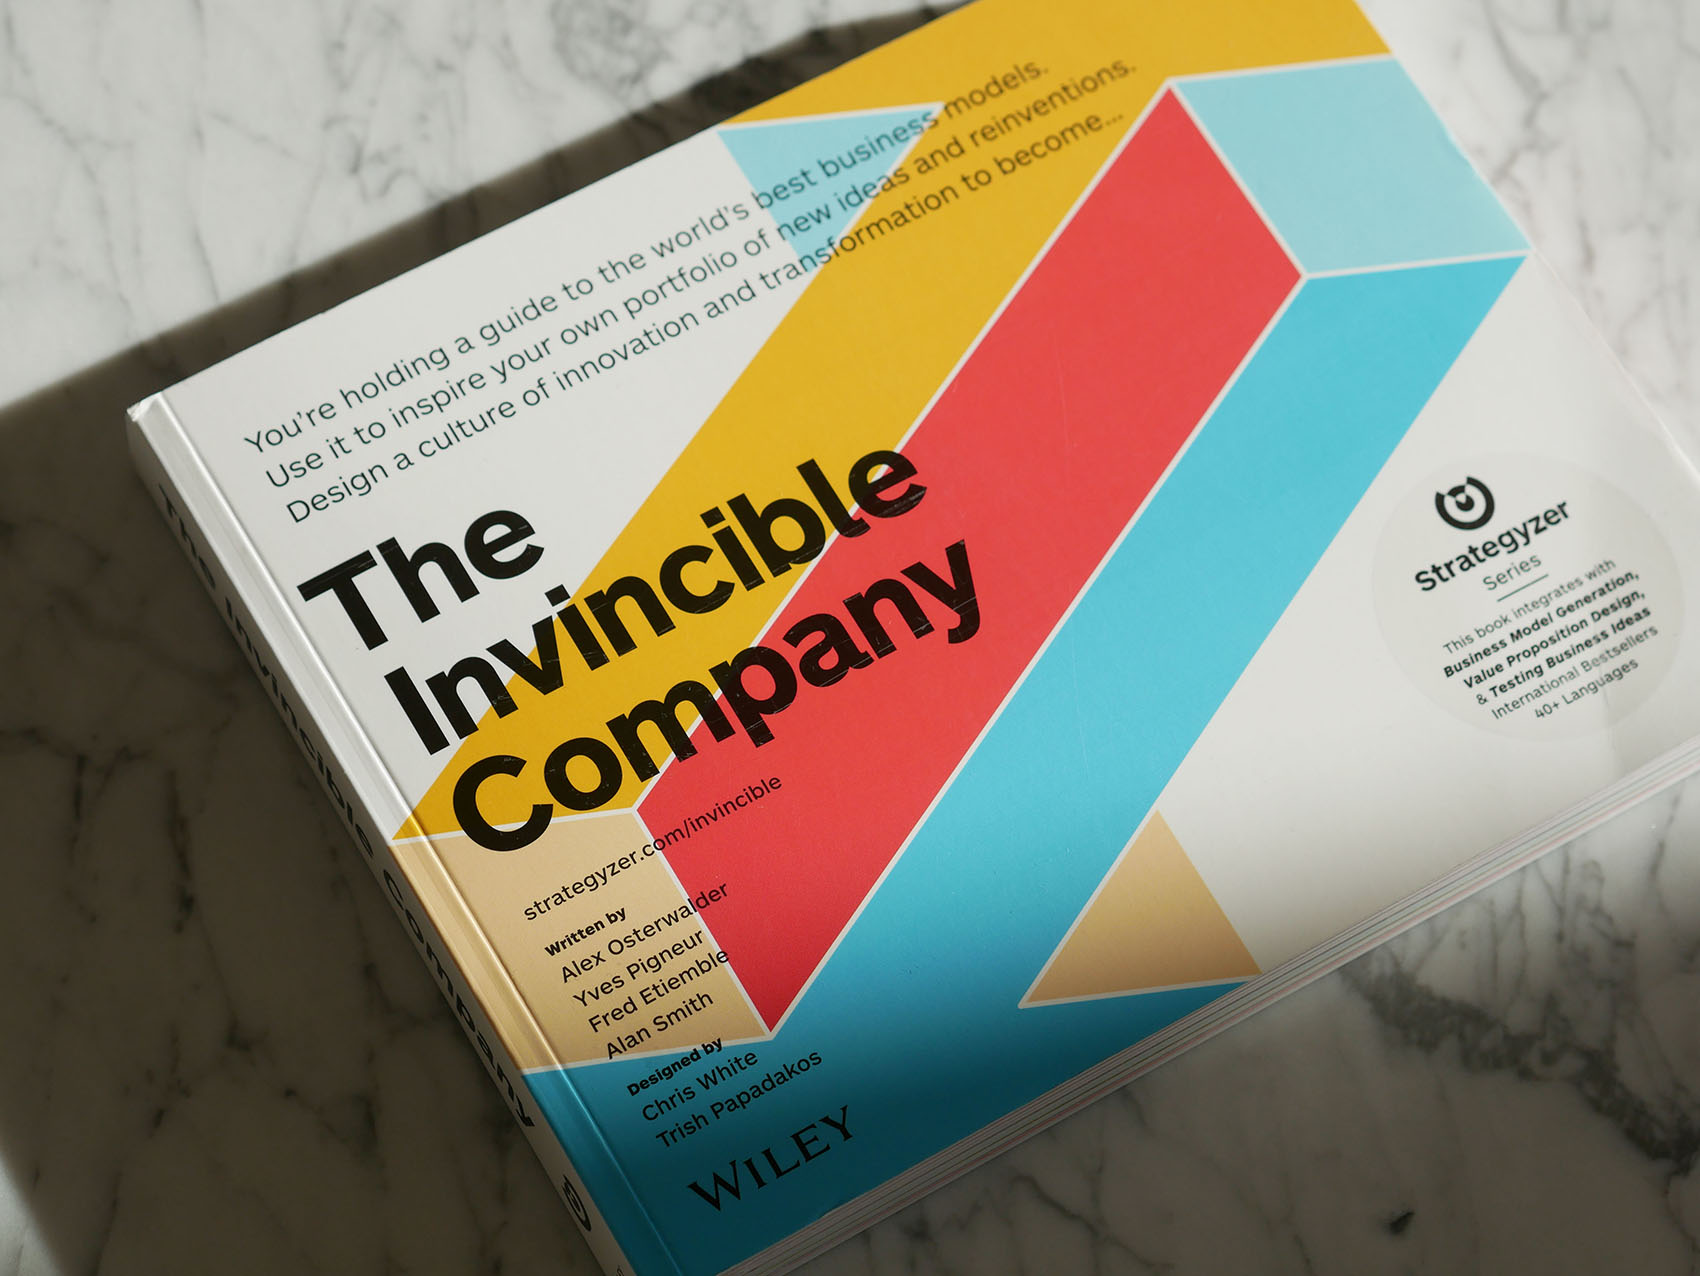 The Invincible Company review